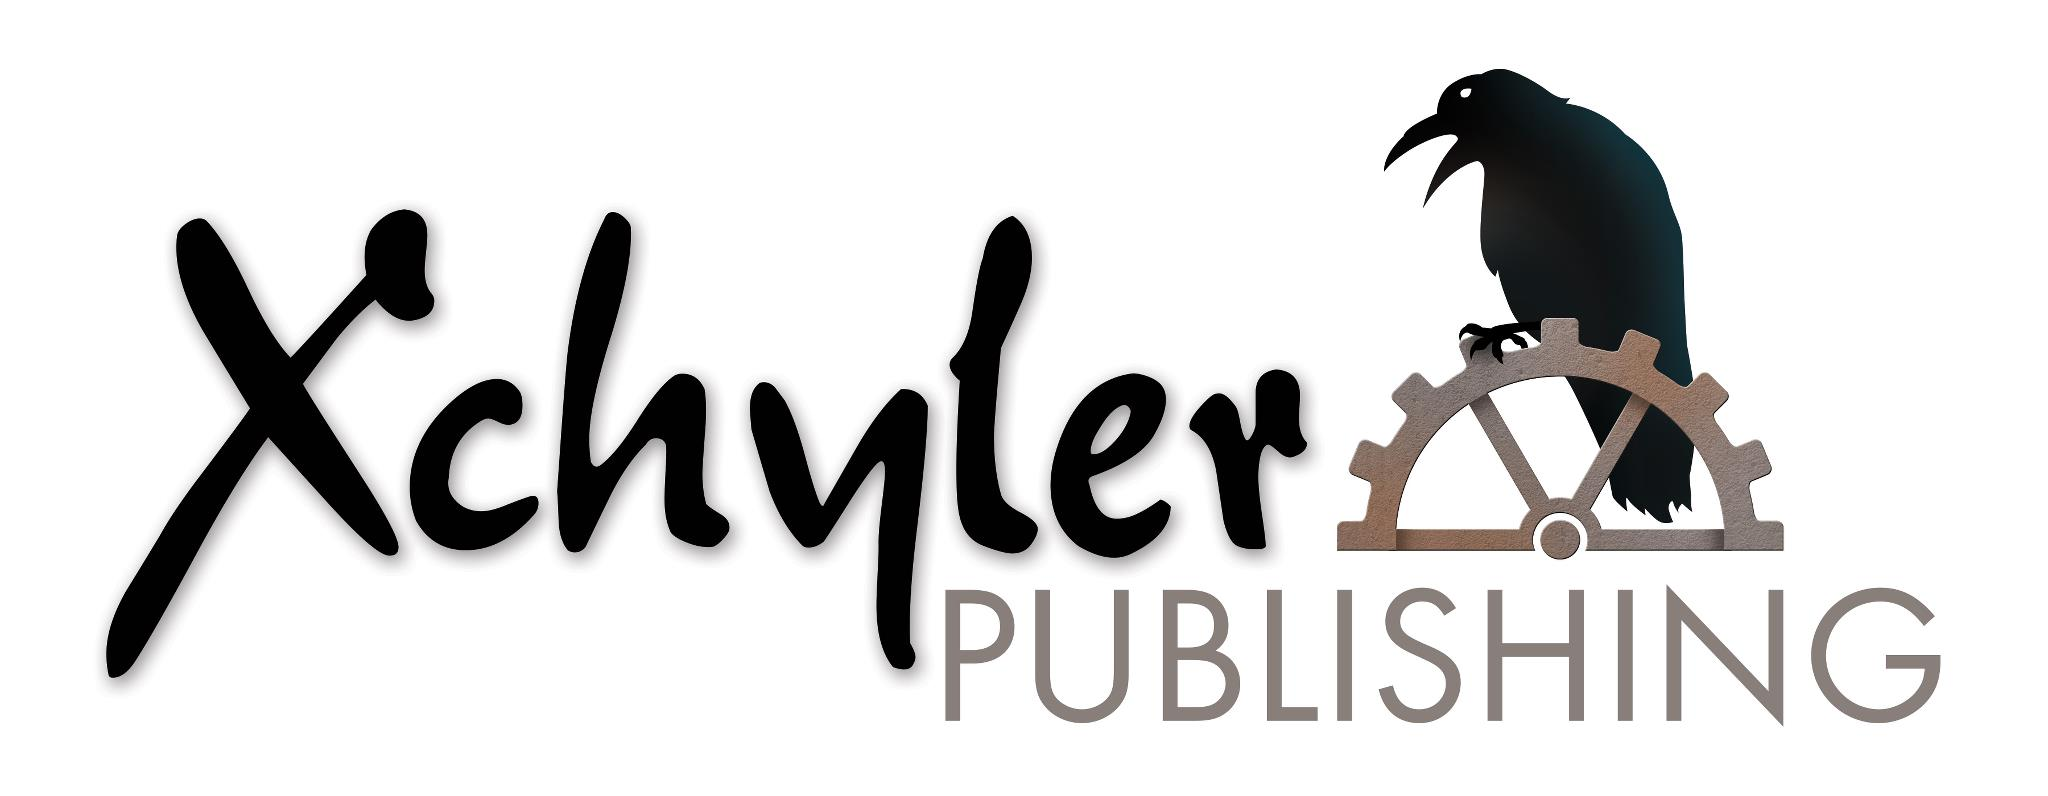 Xchyler Publishing